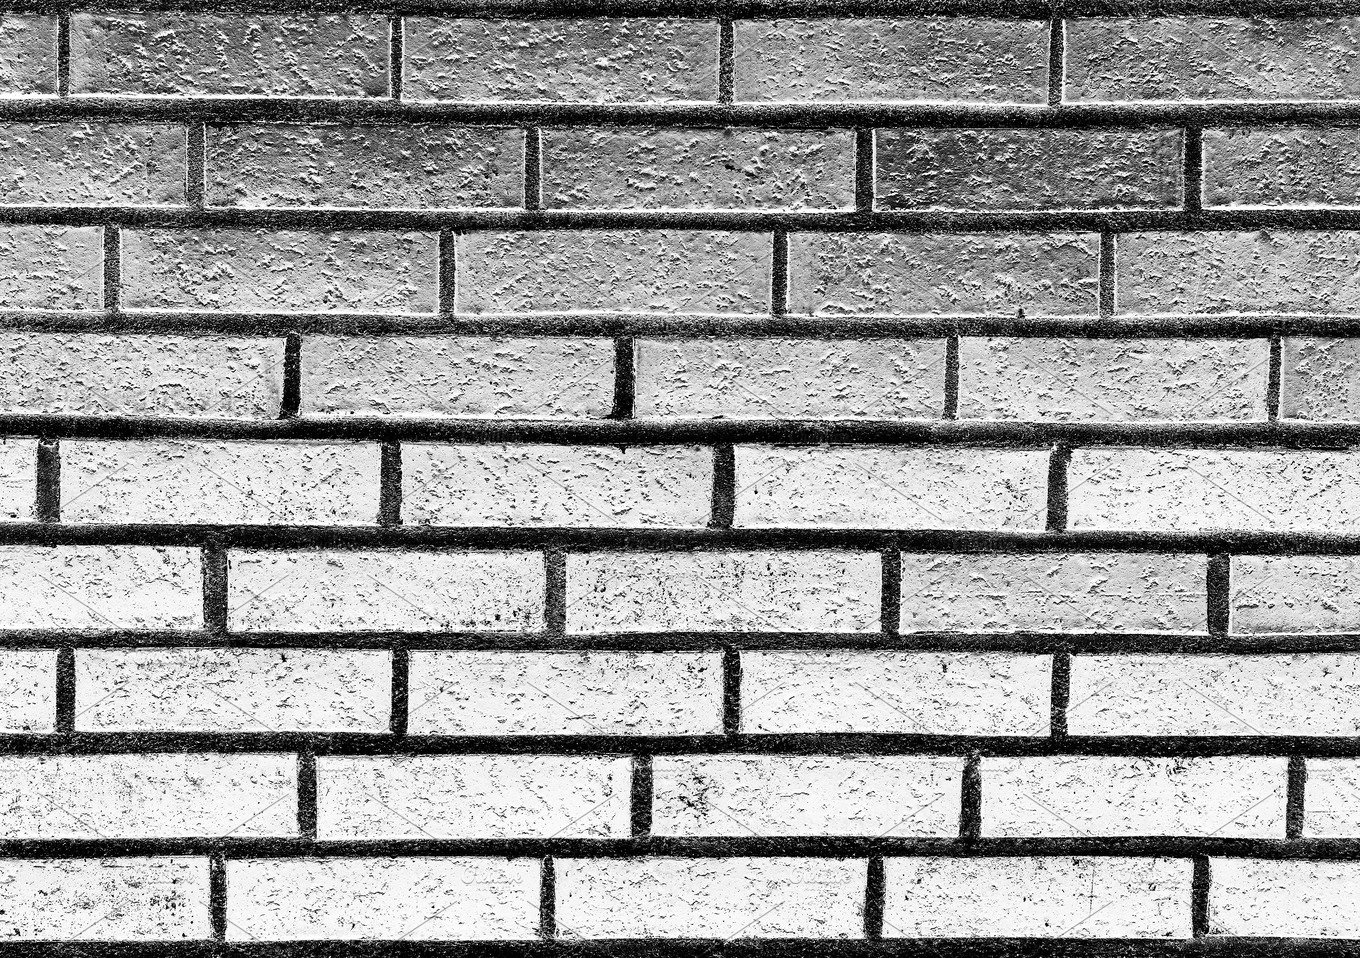 Horizontal Black And White Brick